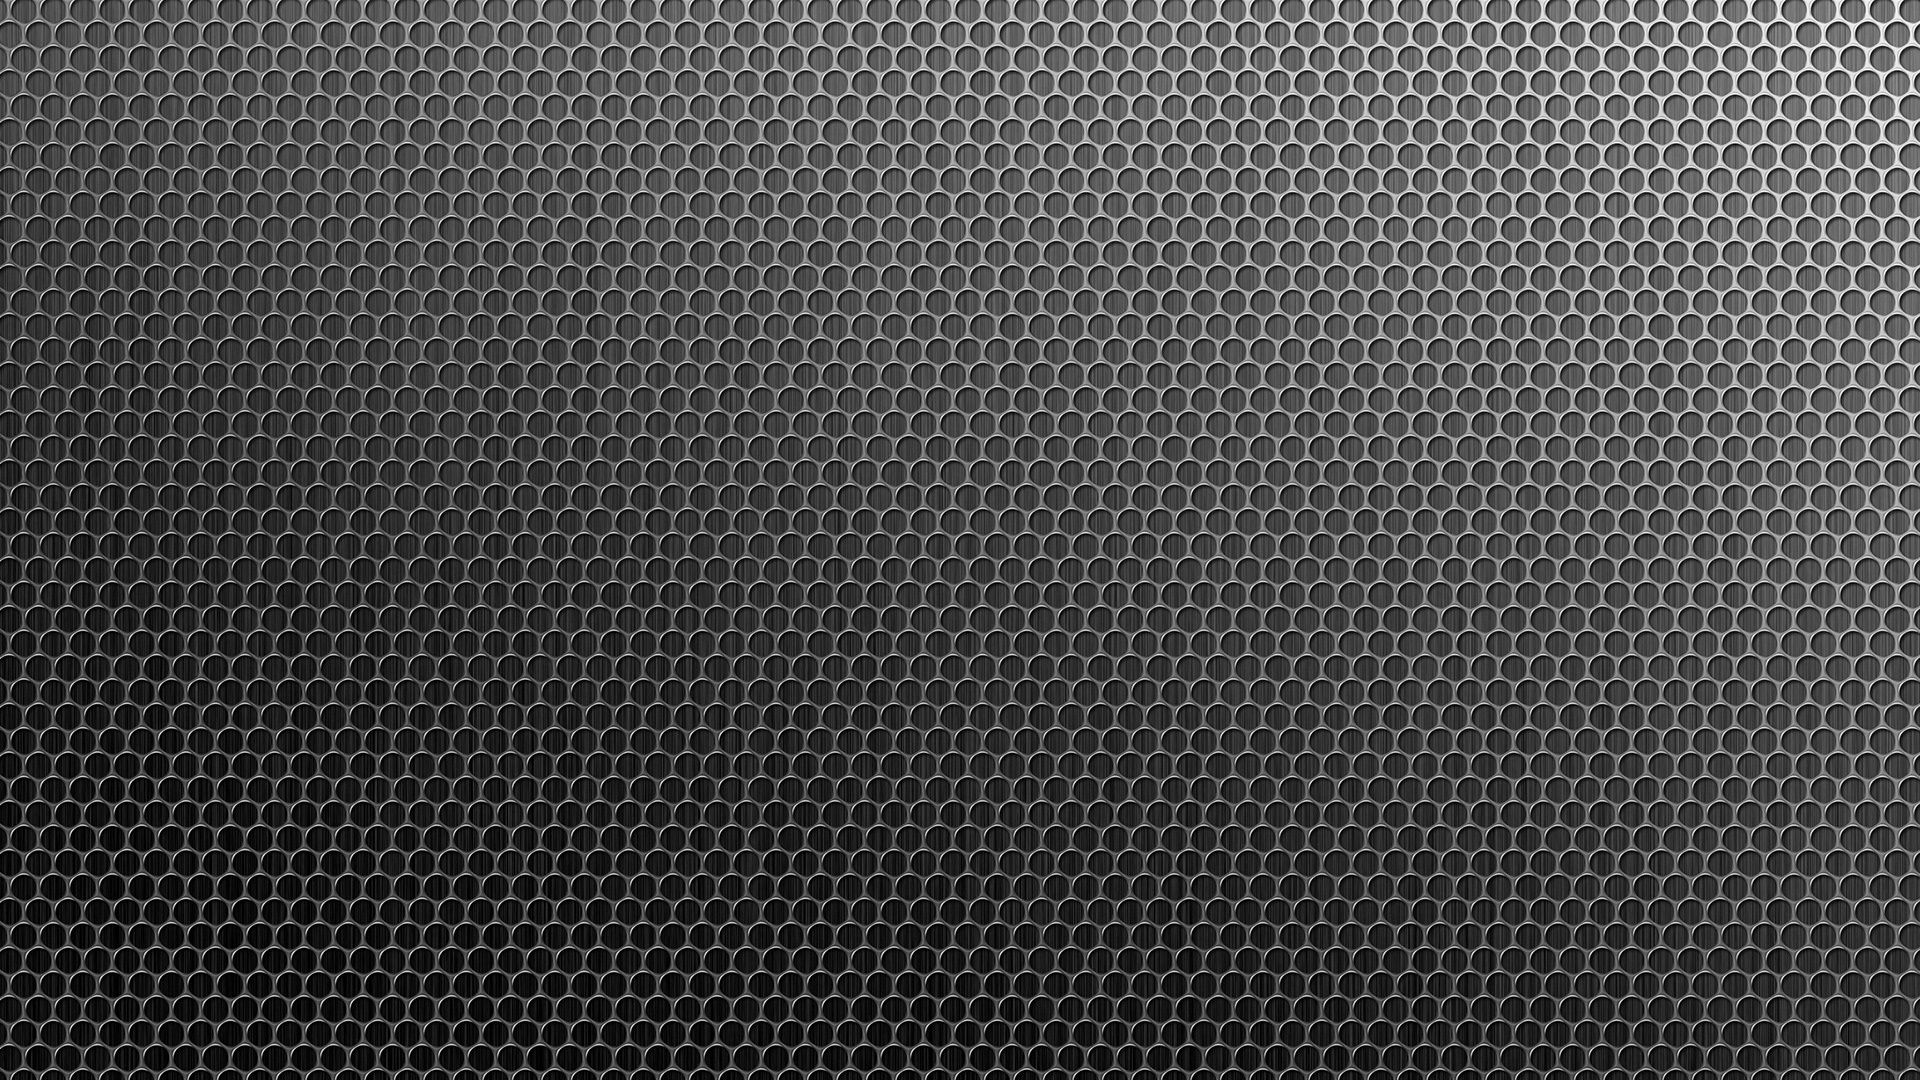 Abstract patterns pattern wallpaper background crazy hd honeycomb wallpapers hd desktop backgrounds images and pictures honeycomb desktop wallpapers wallpapers voltagebd Image collections